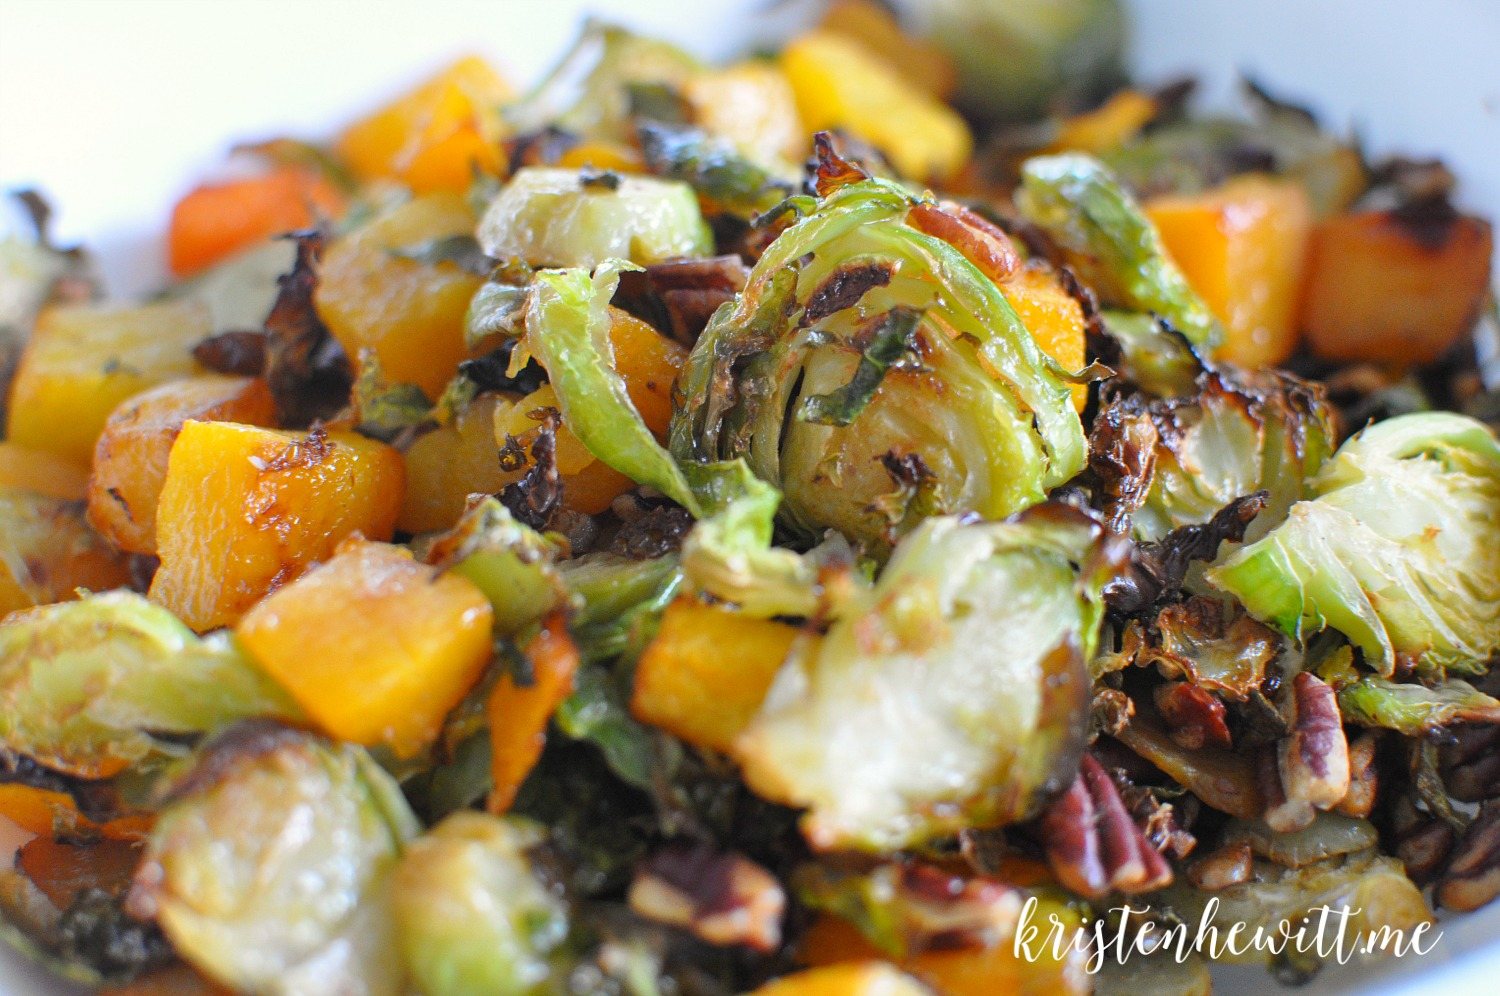 The Easiest and Best Brussels Sprouts & Butternut Squash Side Ever